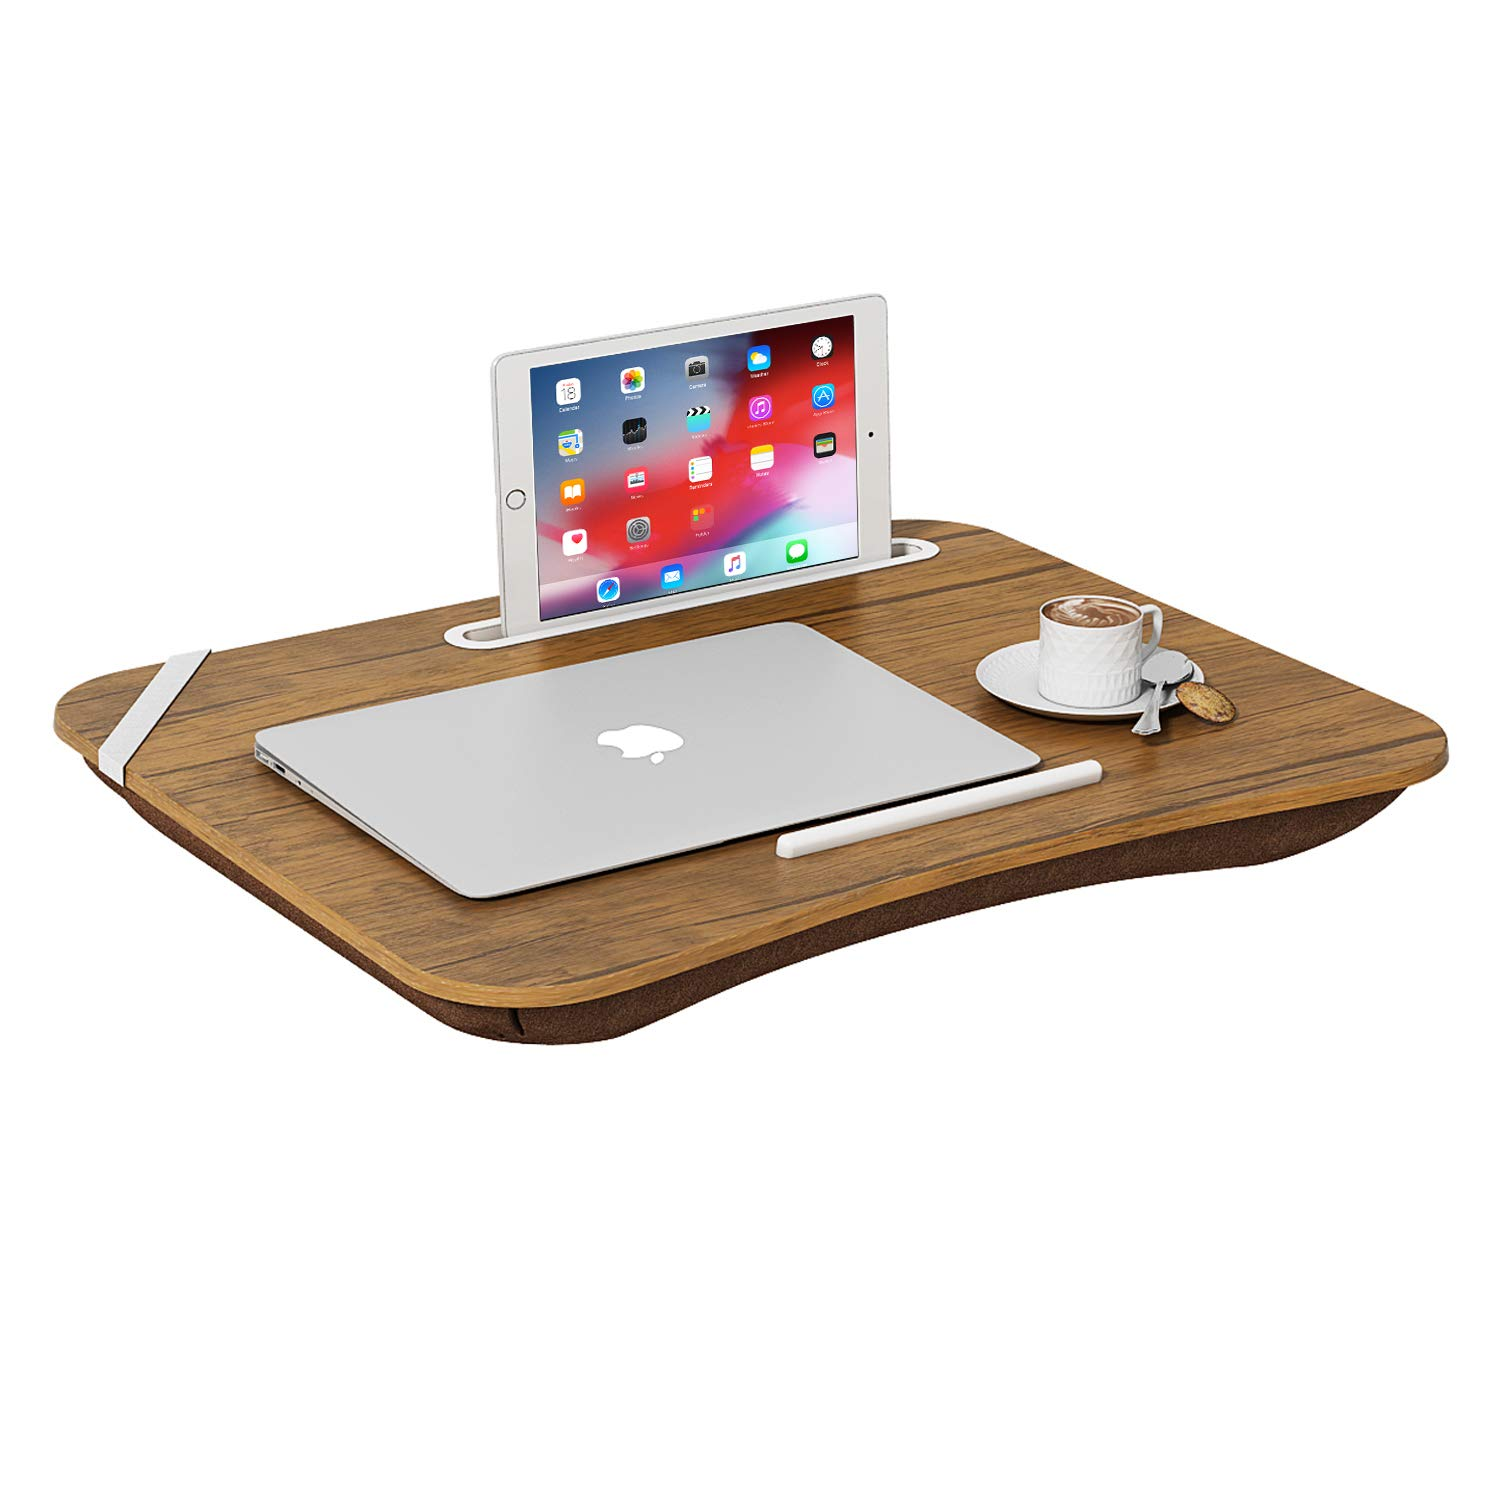 HOME BI Portable Lap Desk Laptop Table Tray Bed Table with Handle, Phone Holder, Built-in Laptop Stop Bar, Pillow Foam Cushion,18.5L x 14.96W x 2.17H Inch, Brown